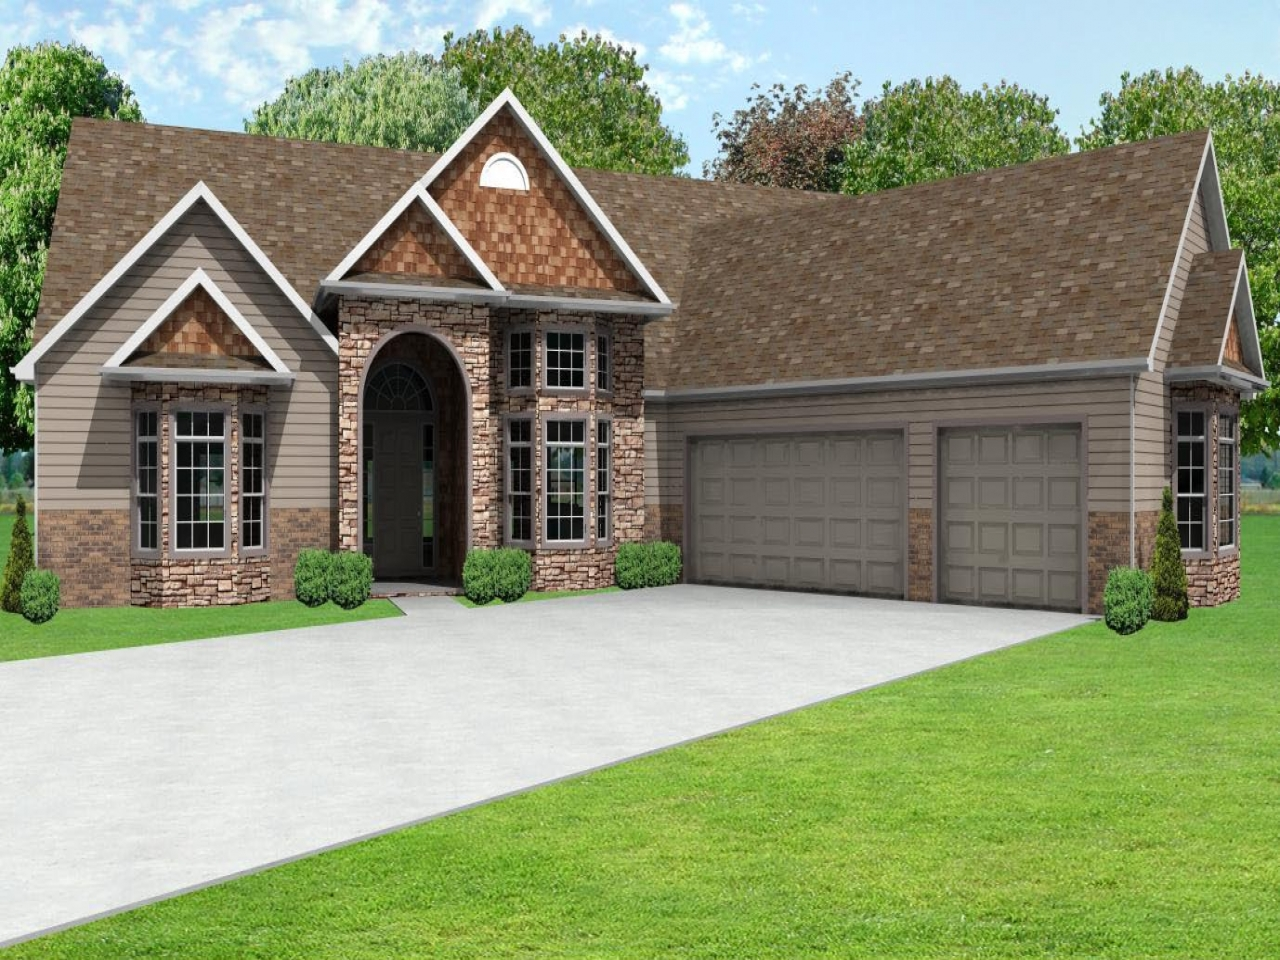 Ranch house plans with in law apartment ranch house plans for House plans with attached inlaw apartment